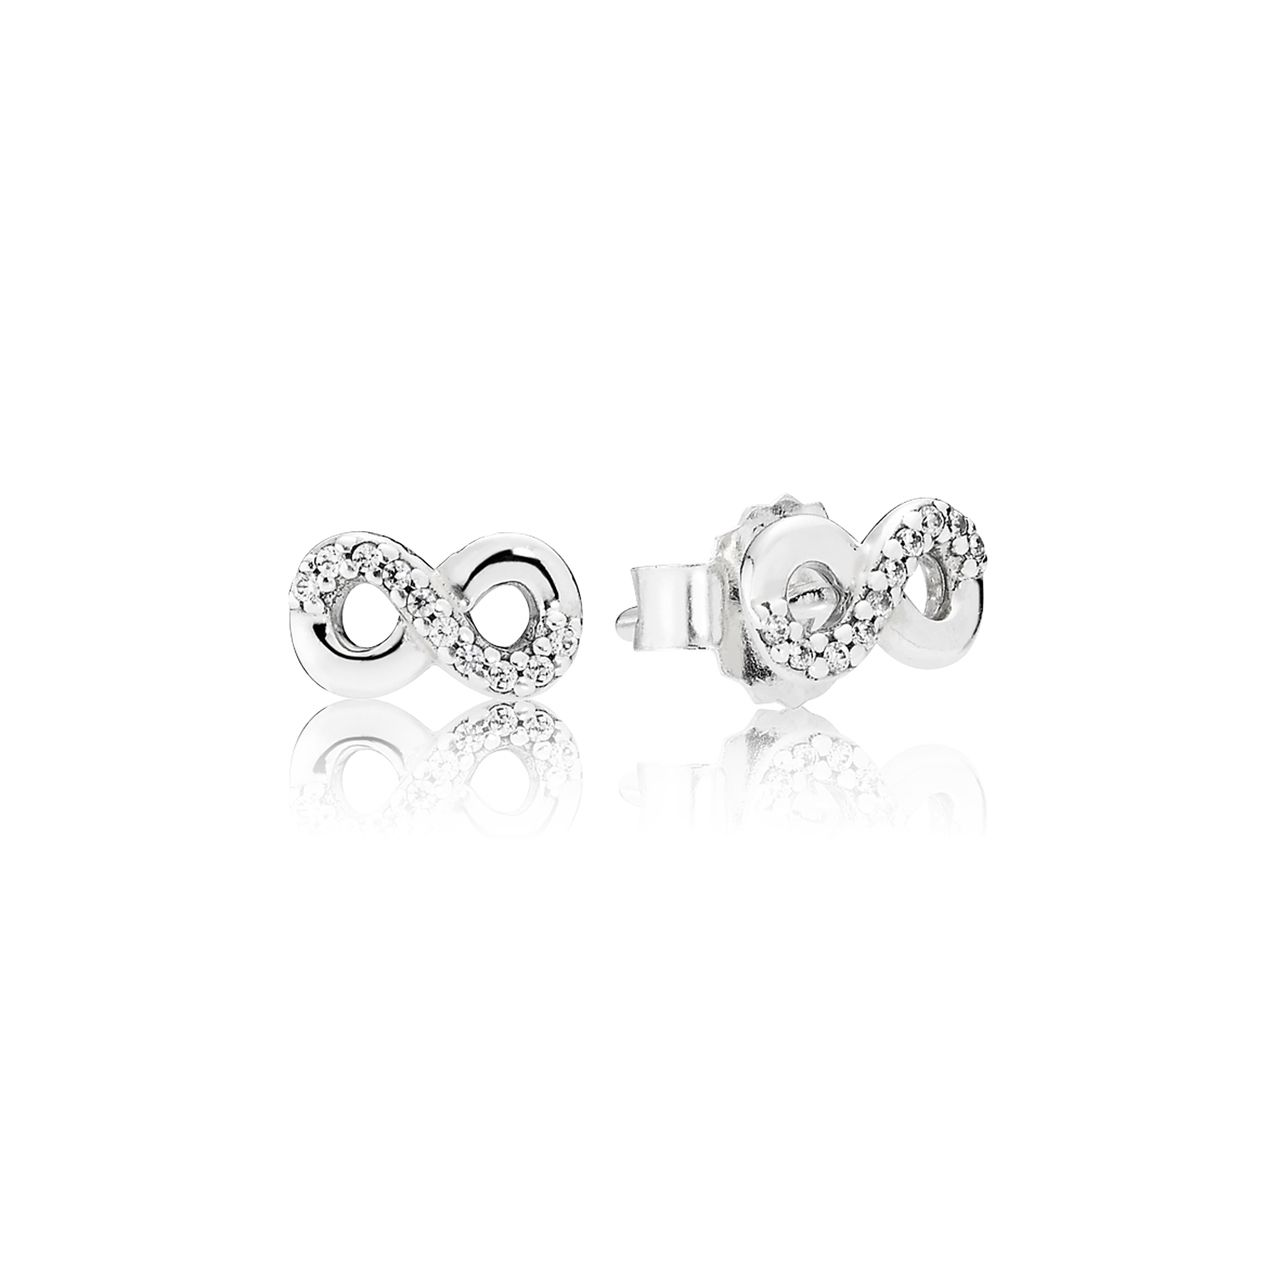 en fit dedication with pandora infinity zirconia sterling silver quality studded charm essence bead pandorafactory top beads